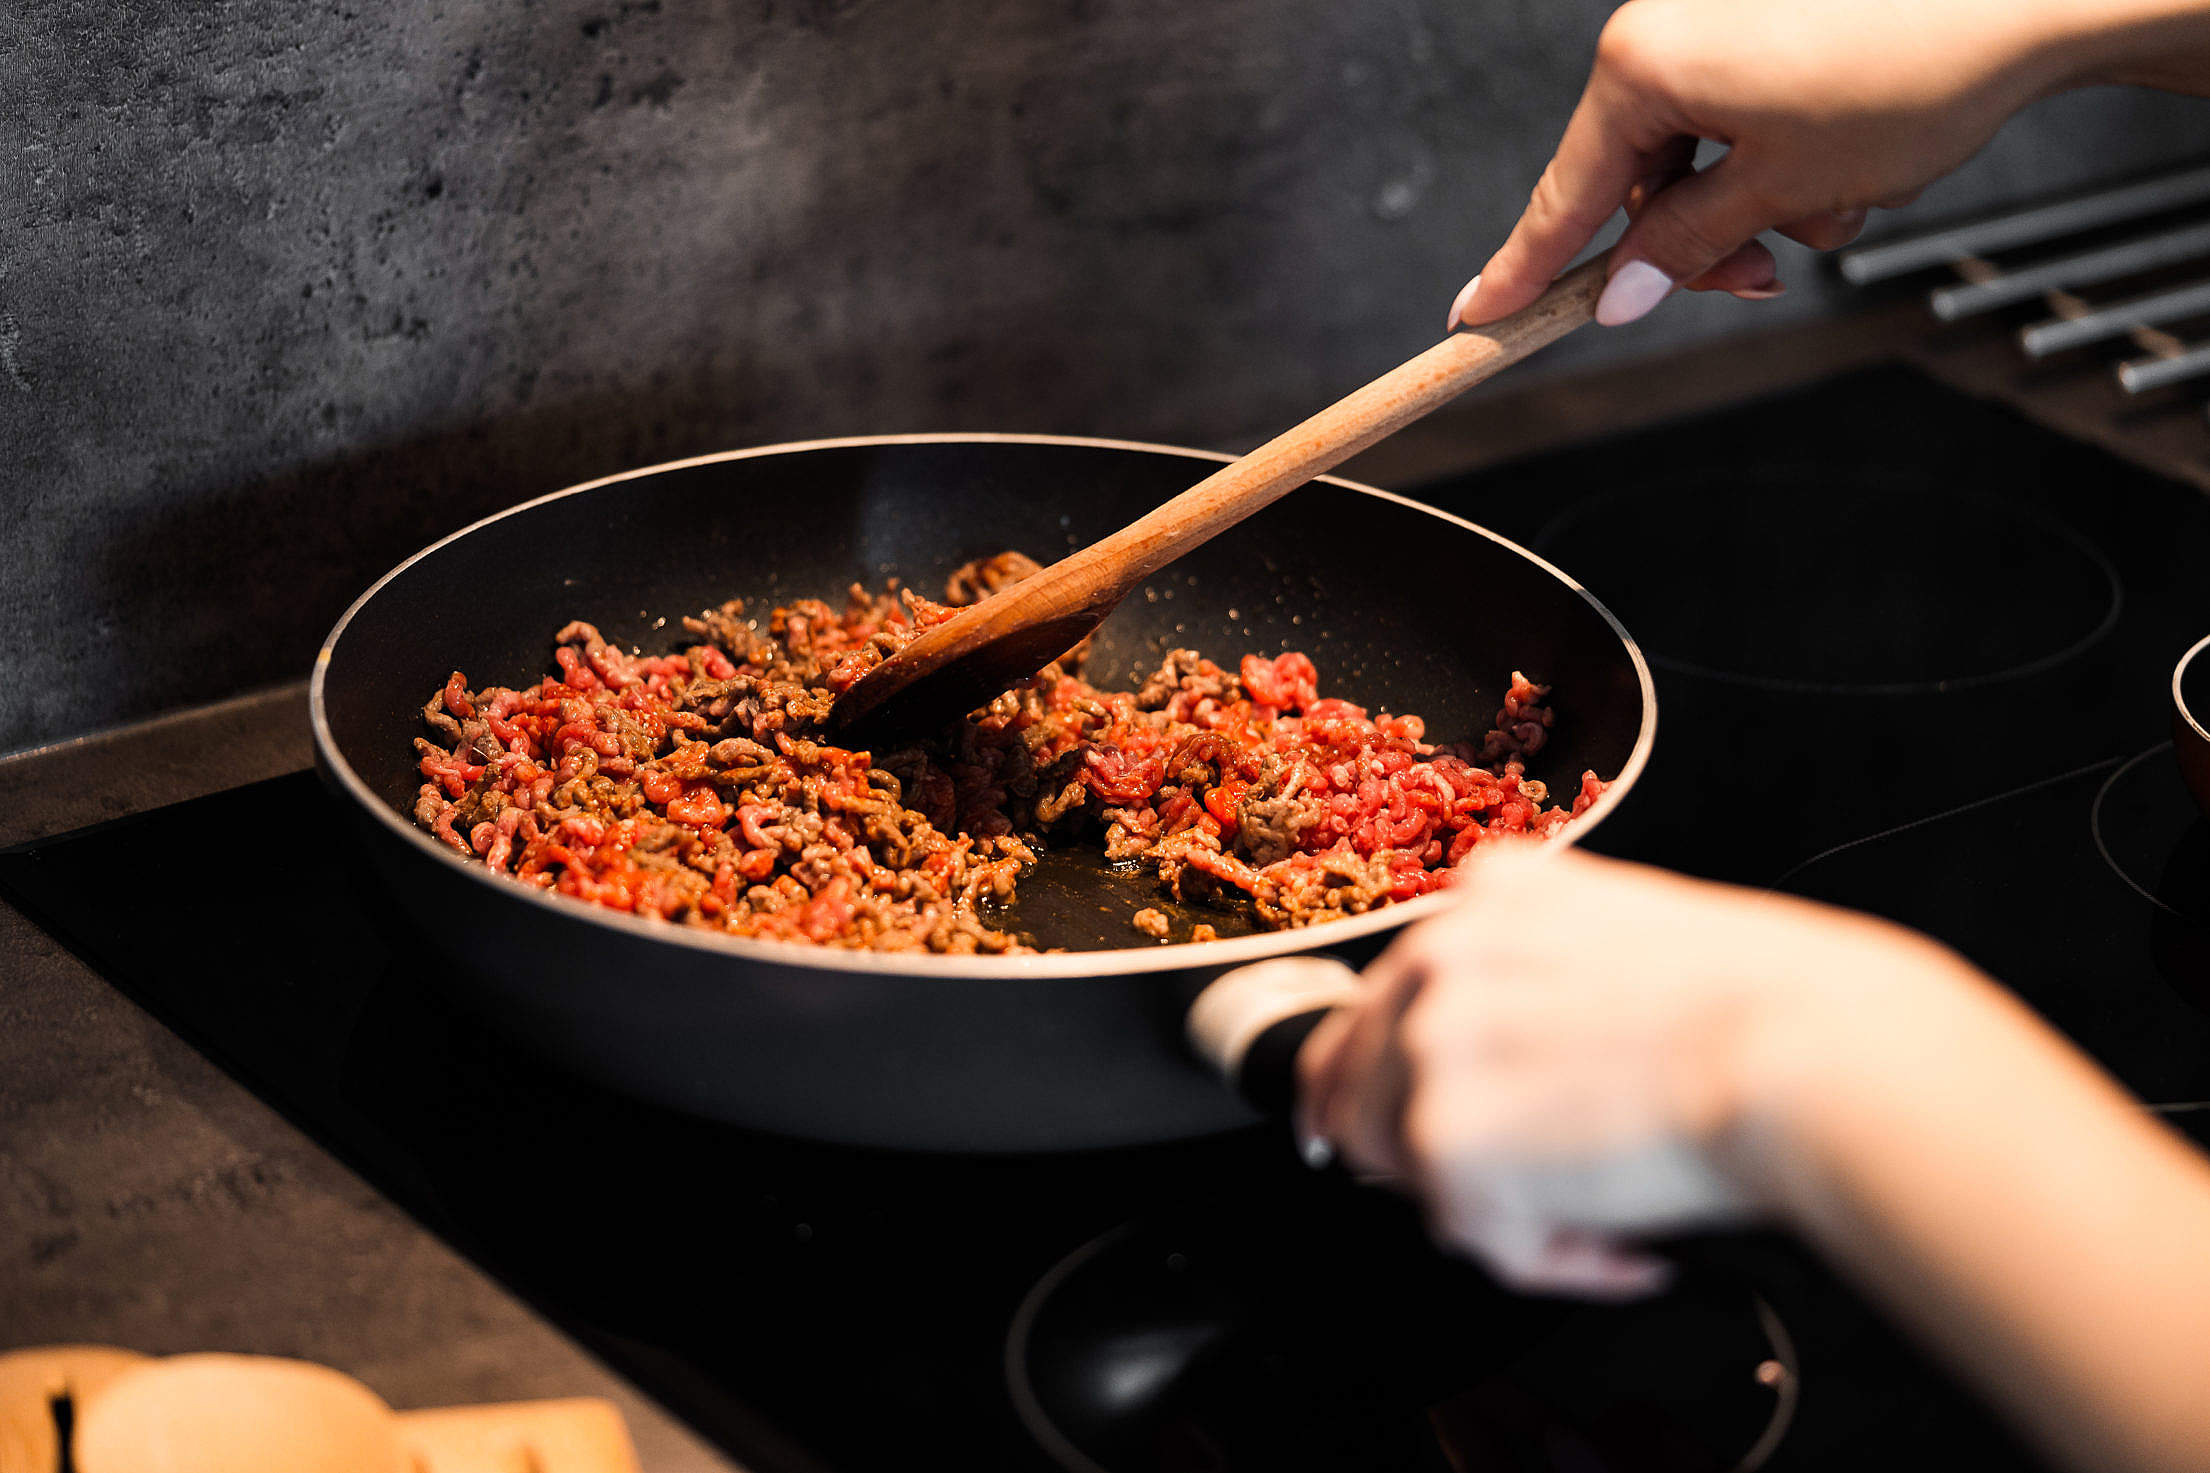 Ground Beef Meat in a Frying Pan Free Stock Photo